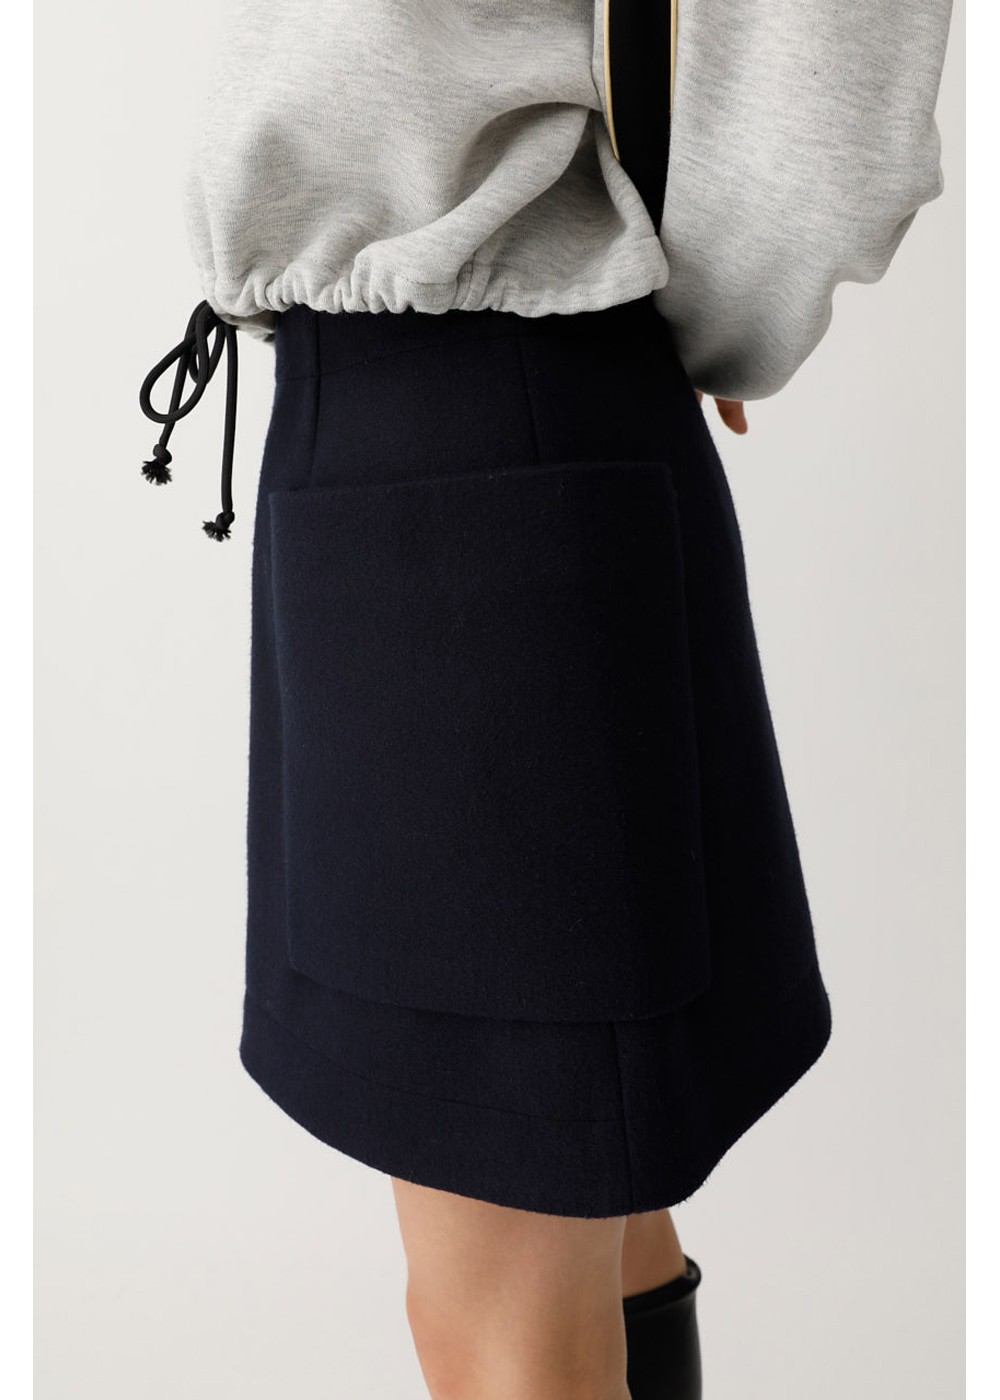 【最大60%OFF】PATCH POCKET MINI SKIRT|NVY|ミニスカート|MOUSSY